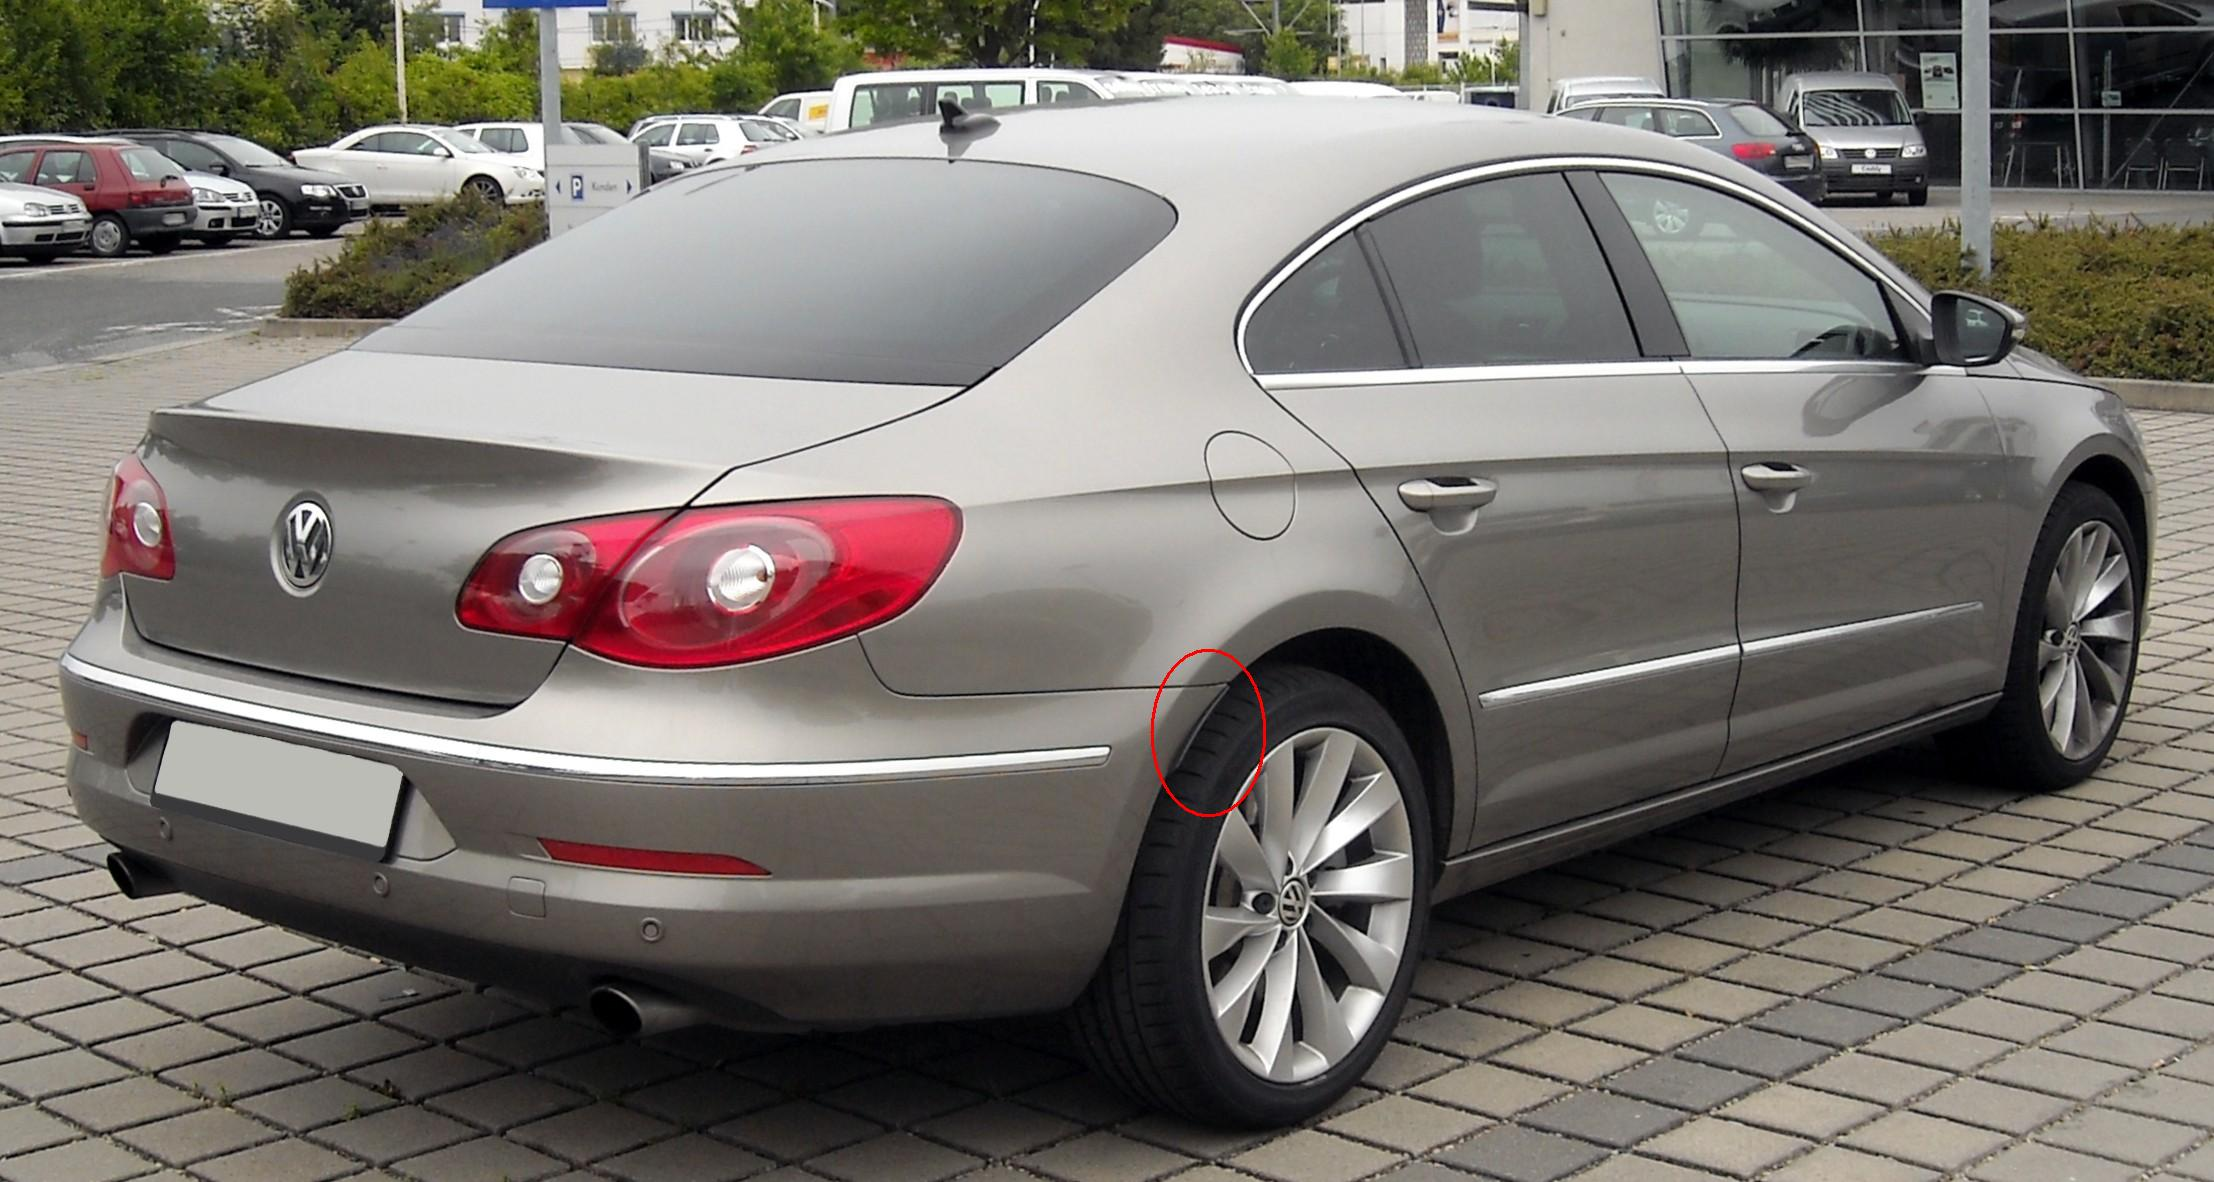 VW_Passat_CC_rear_20090608.jpg